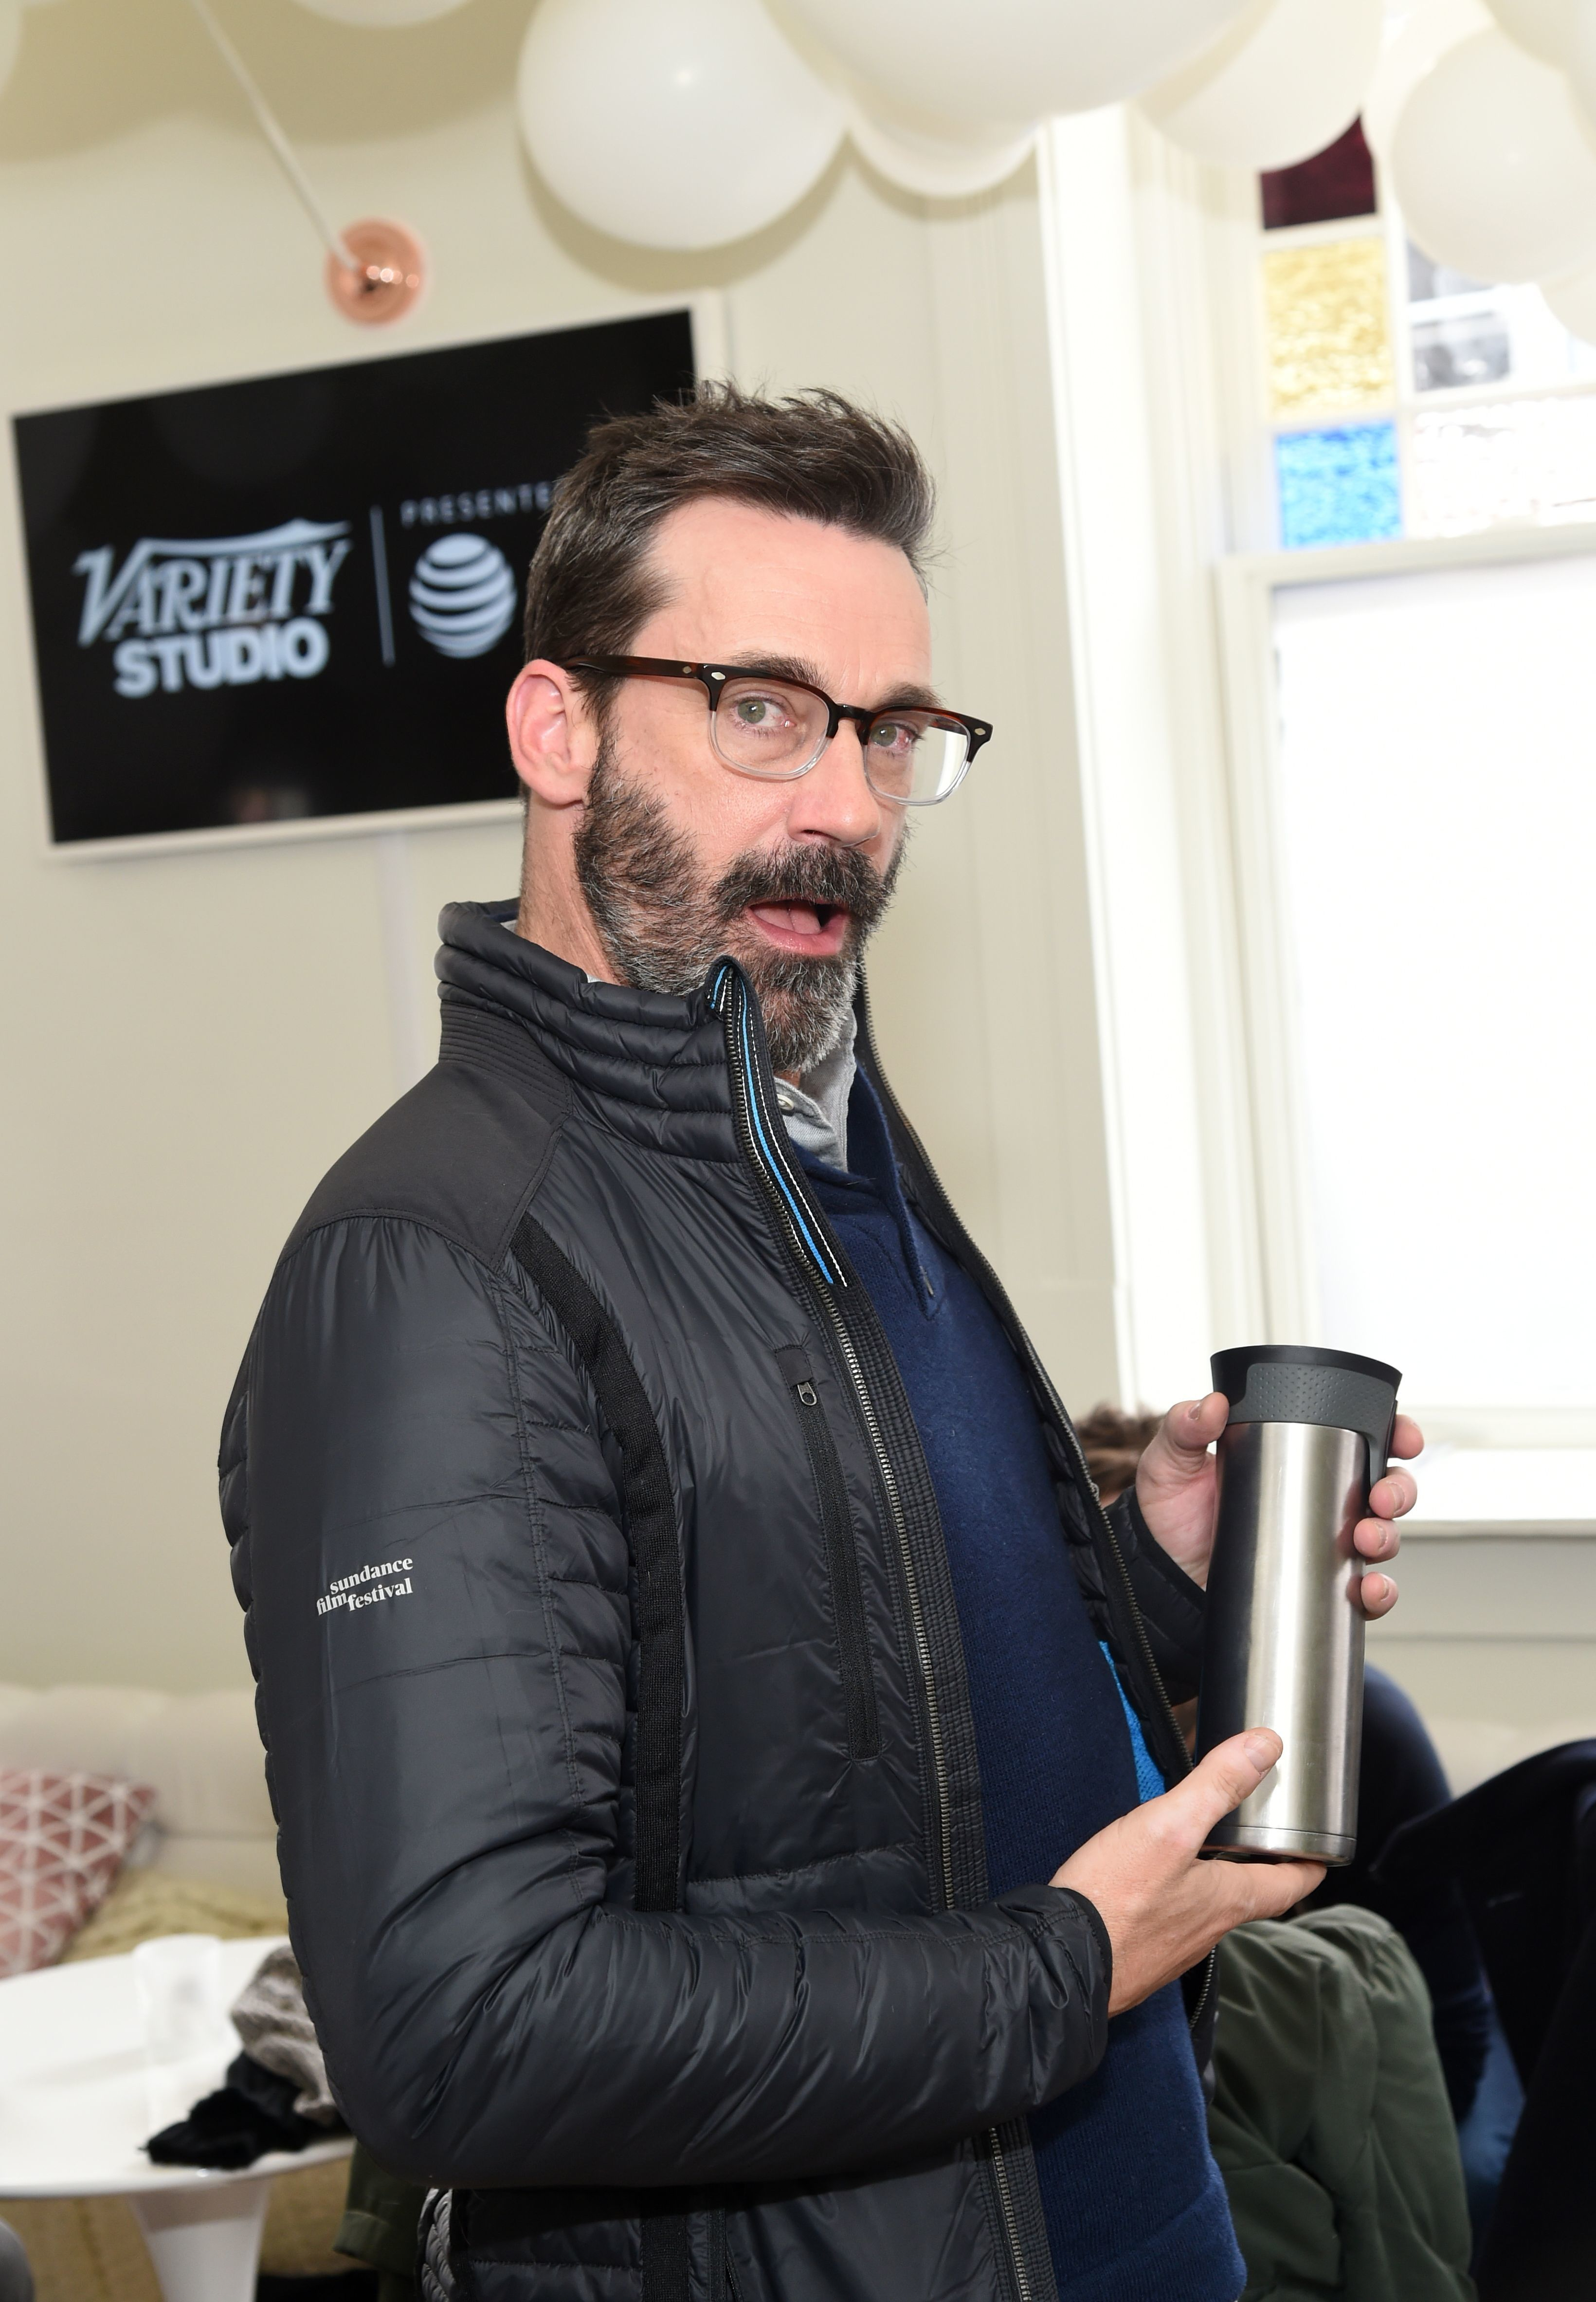 Jon Hamm attends the Variety Studio at Sundance Presented by AT&T in Park City, Utah, on Jan. 22, 2018.